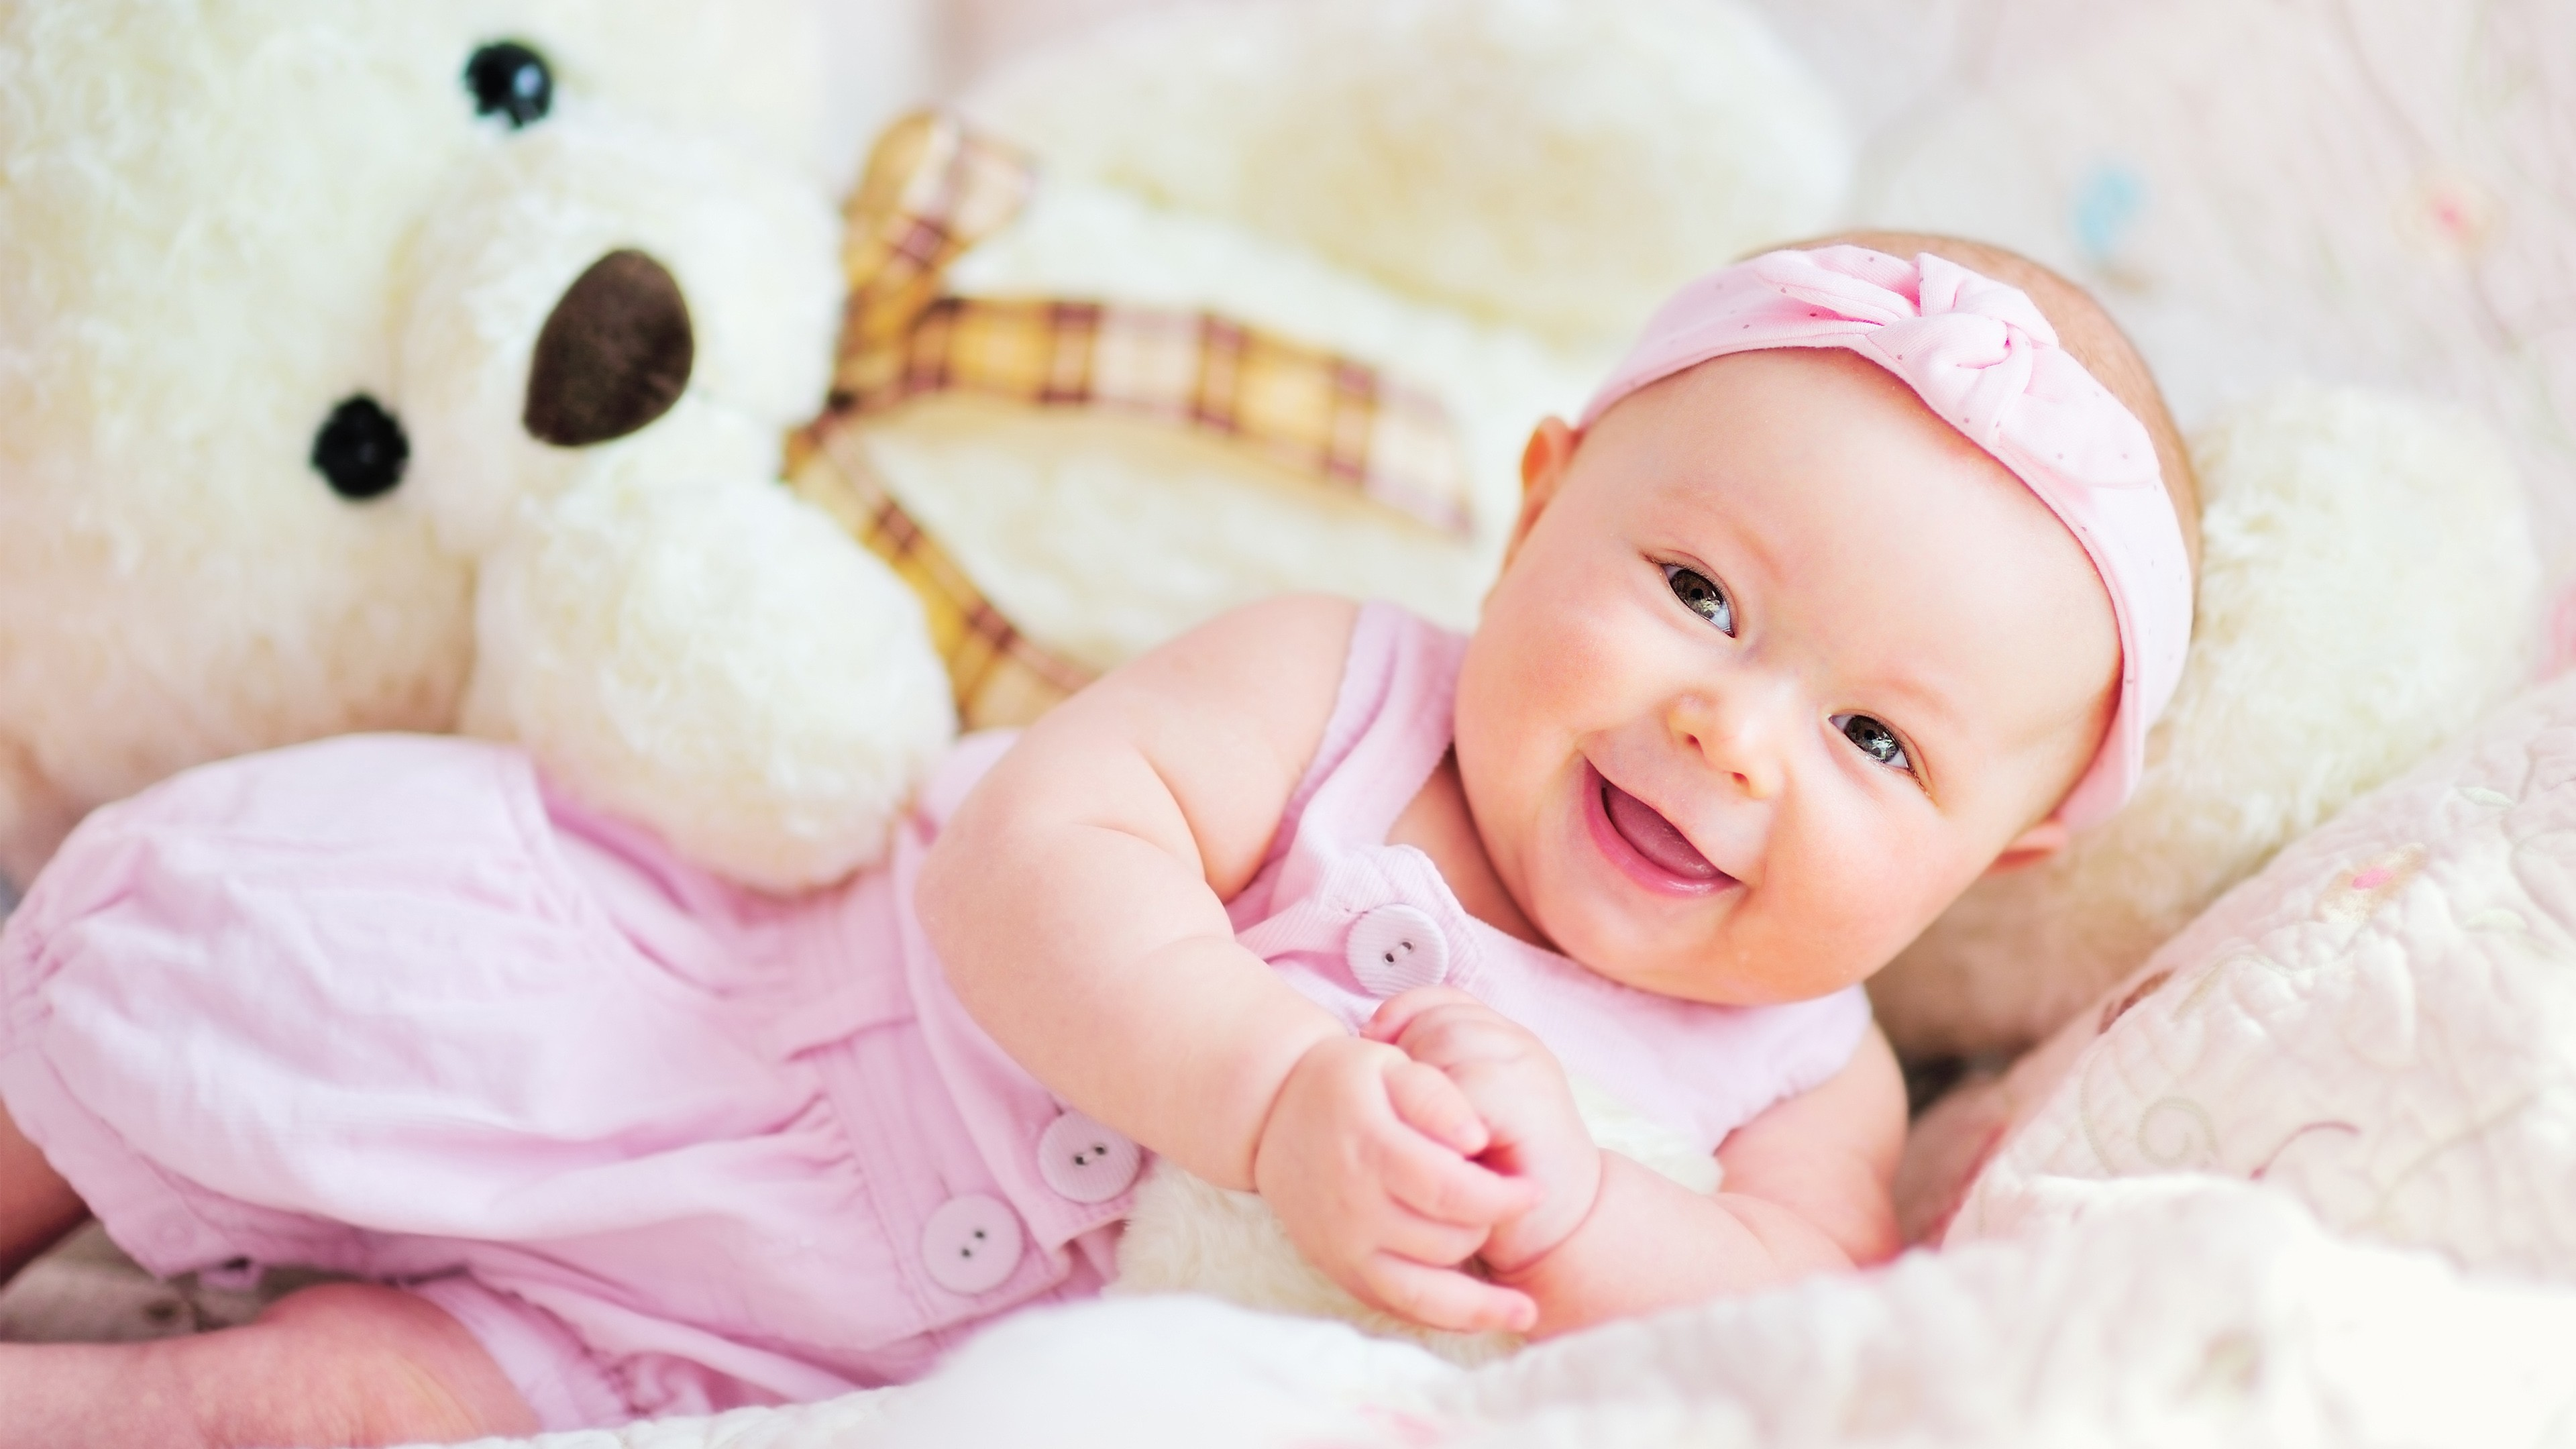 New baby photos free download hd